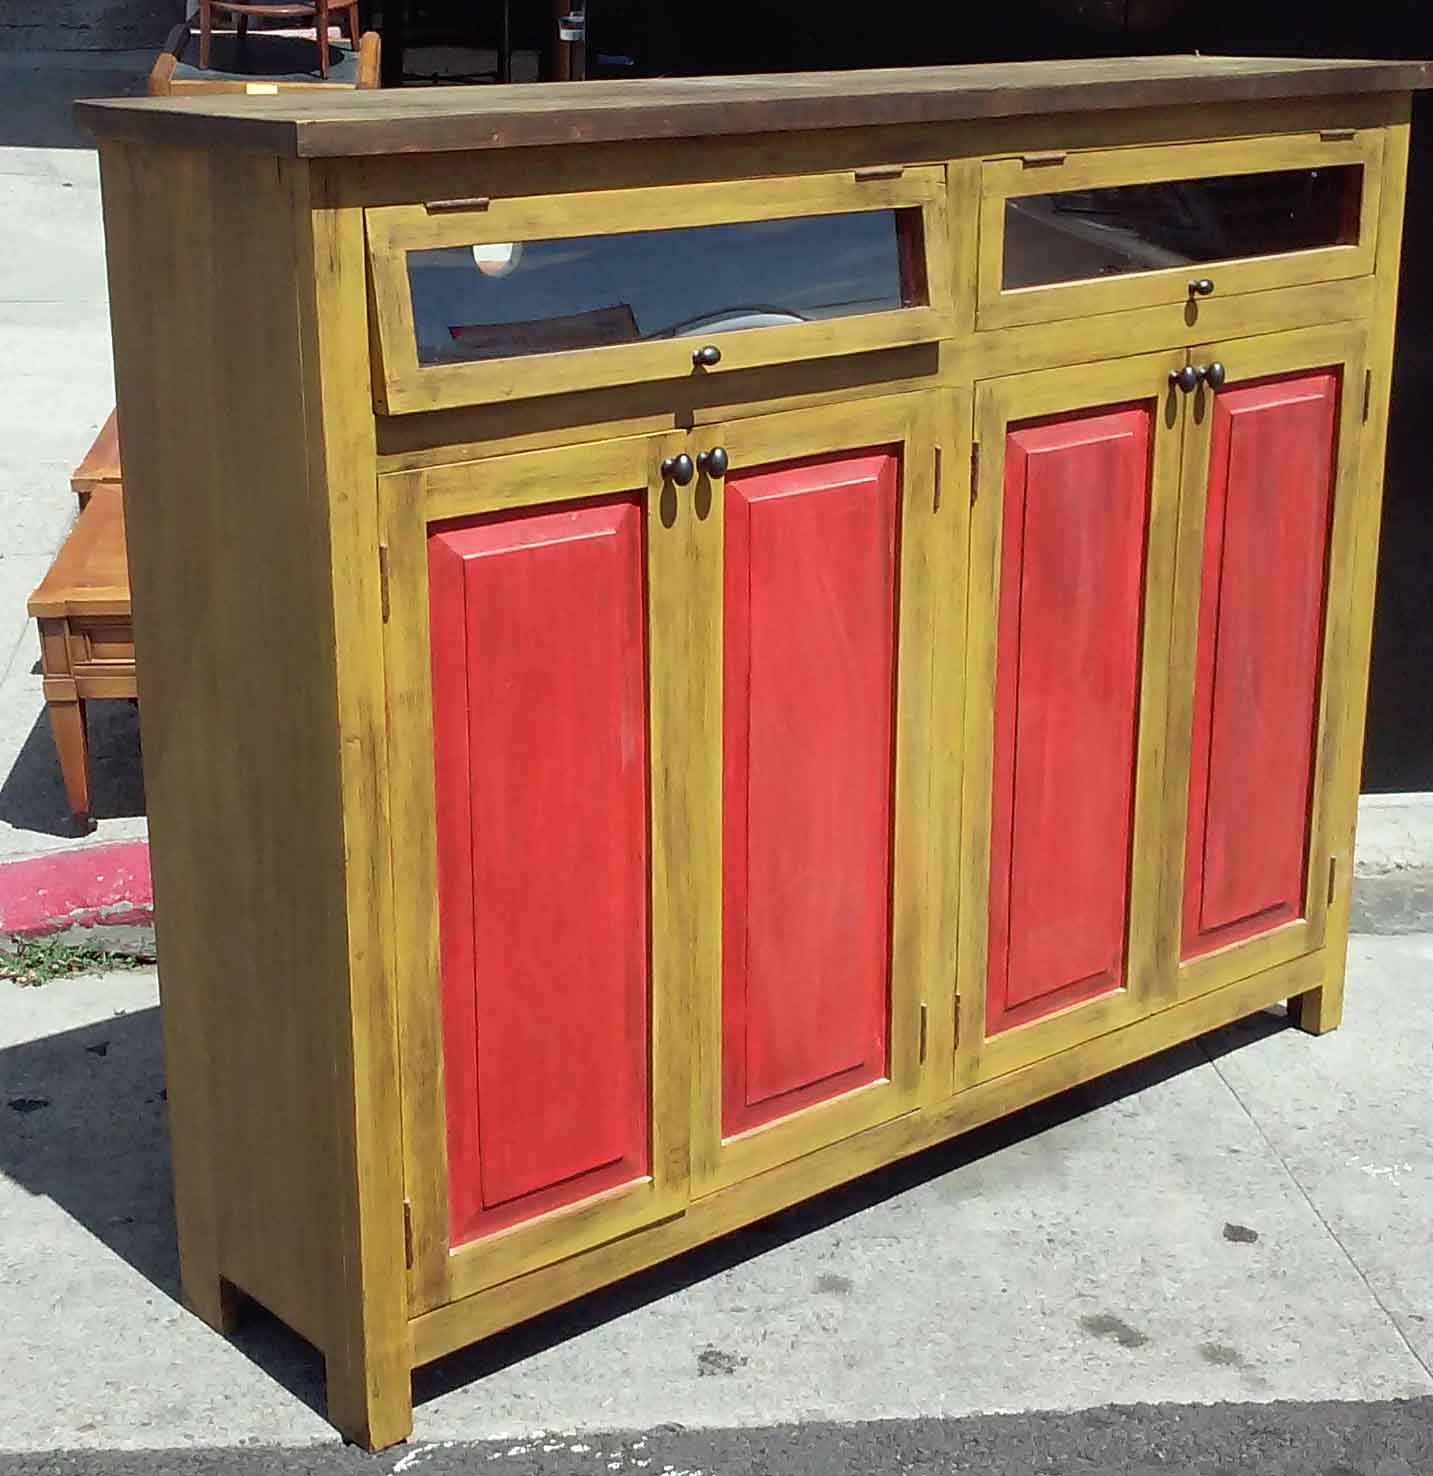 UHURU FURNITURE & COLLECTIBLES: SOLD Mexican Pine Cabinet